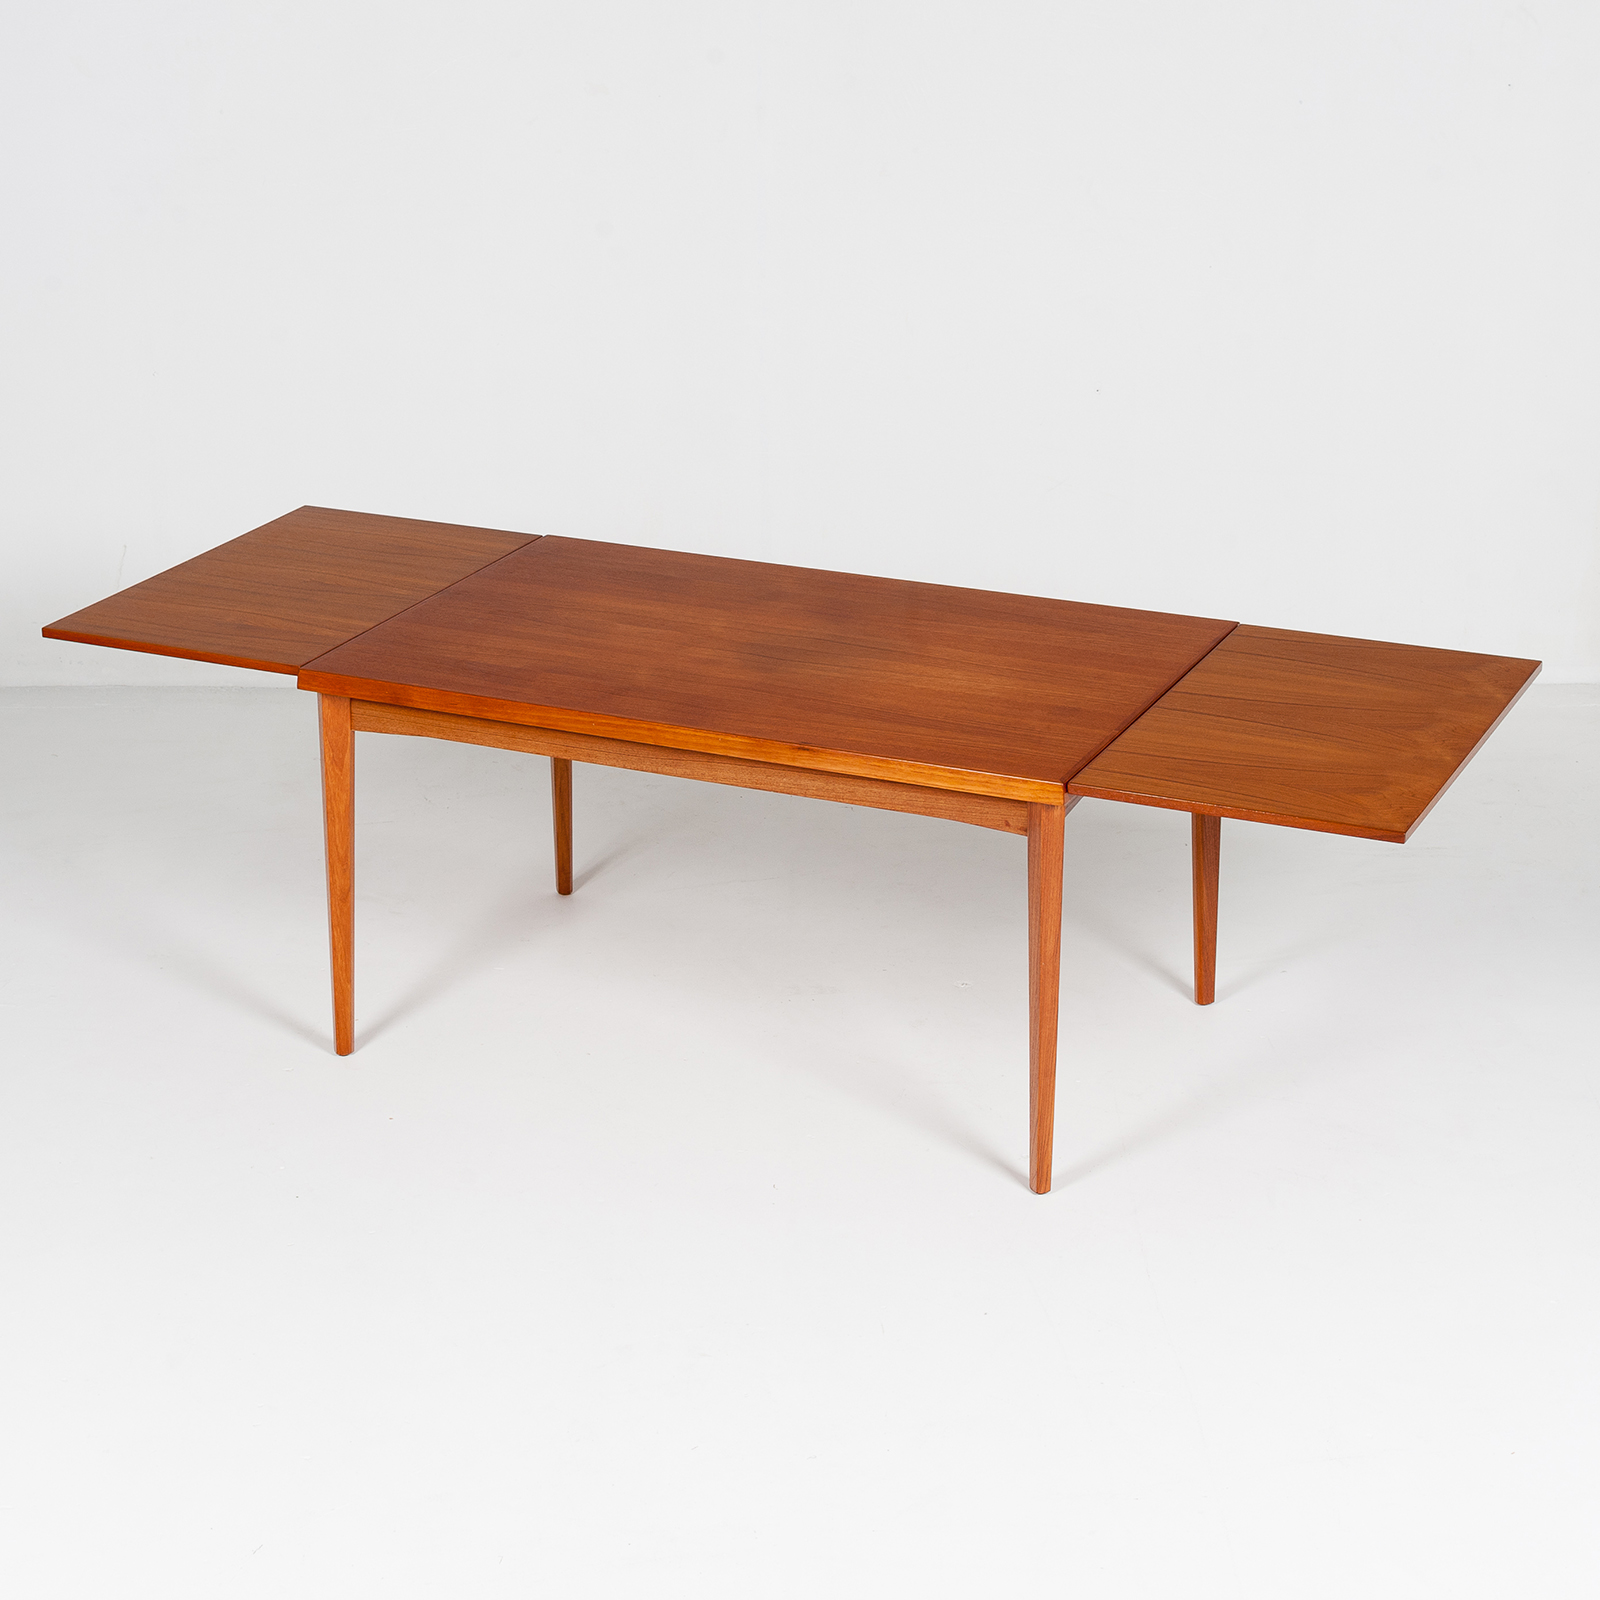 Dining Table In Teak With Concealed Top, 1960s, Denmark27